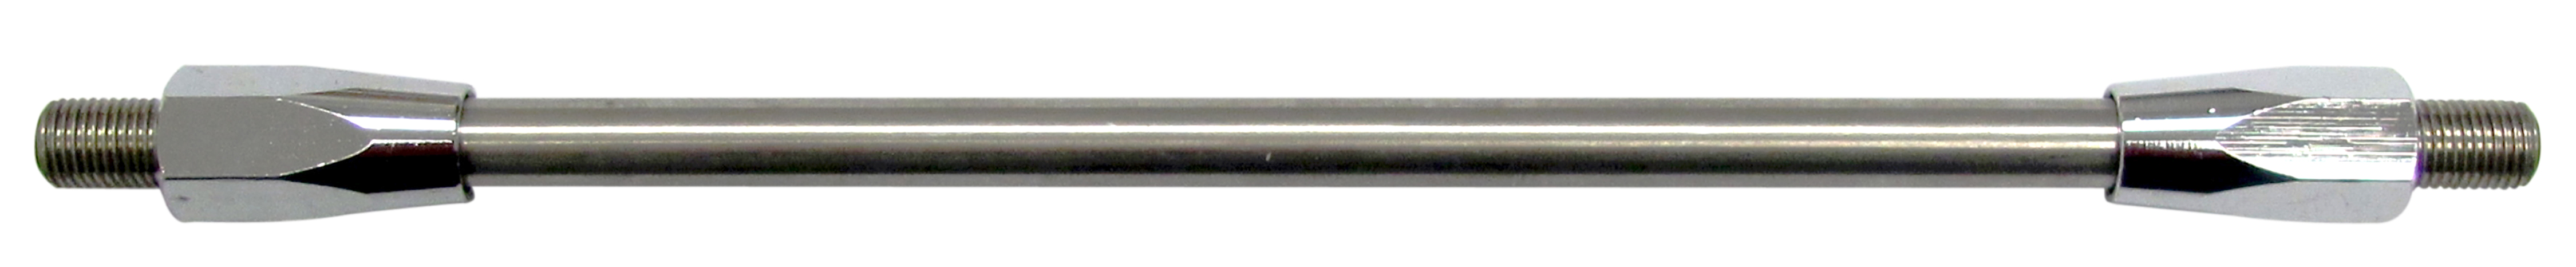 "36"" STAINLESS STEEL SHAFT"